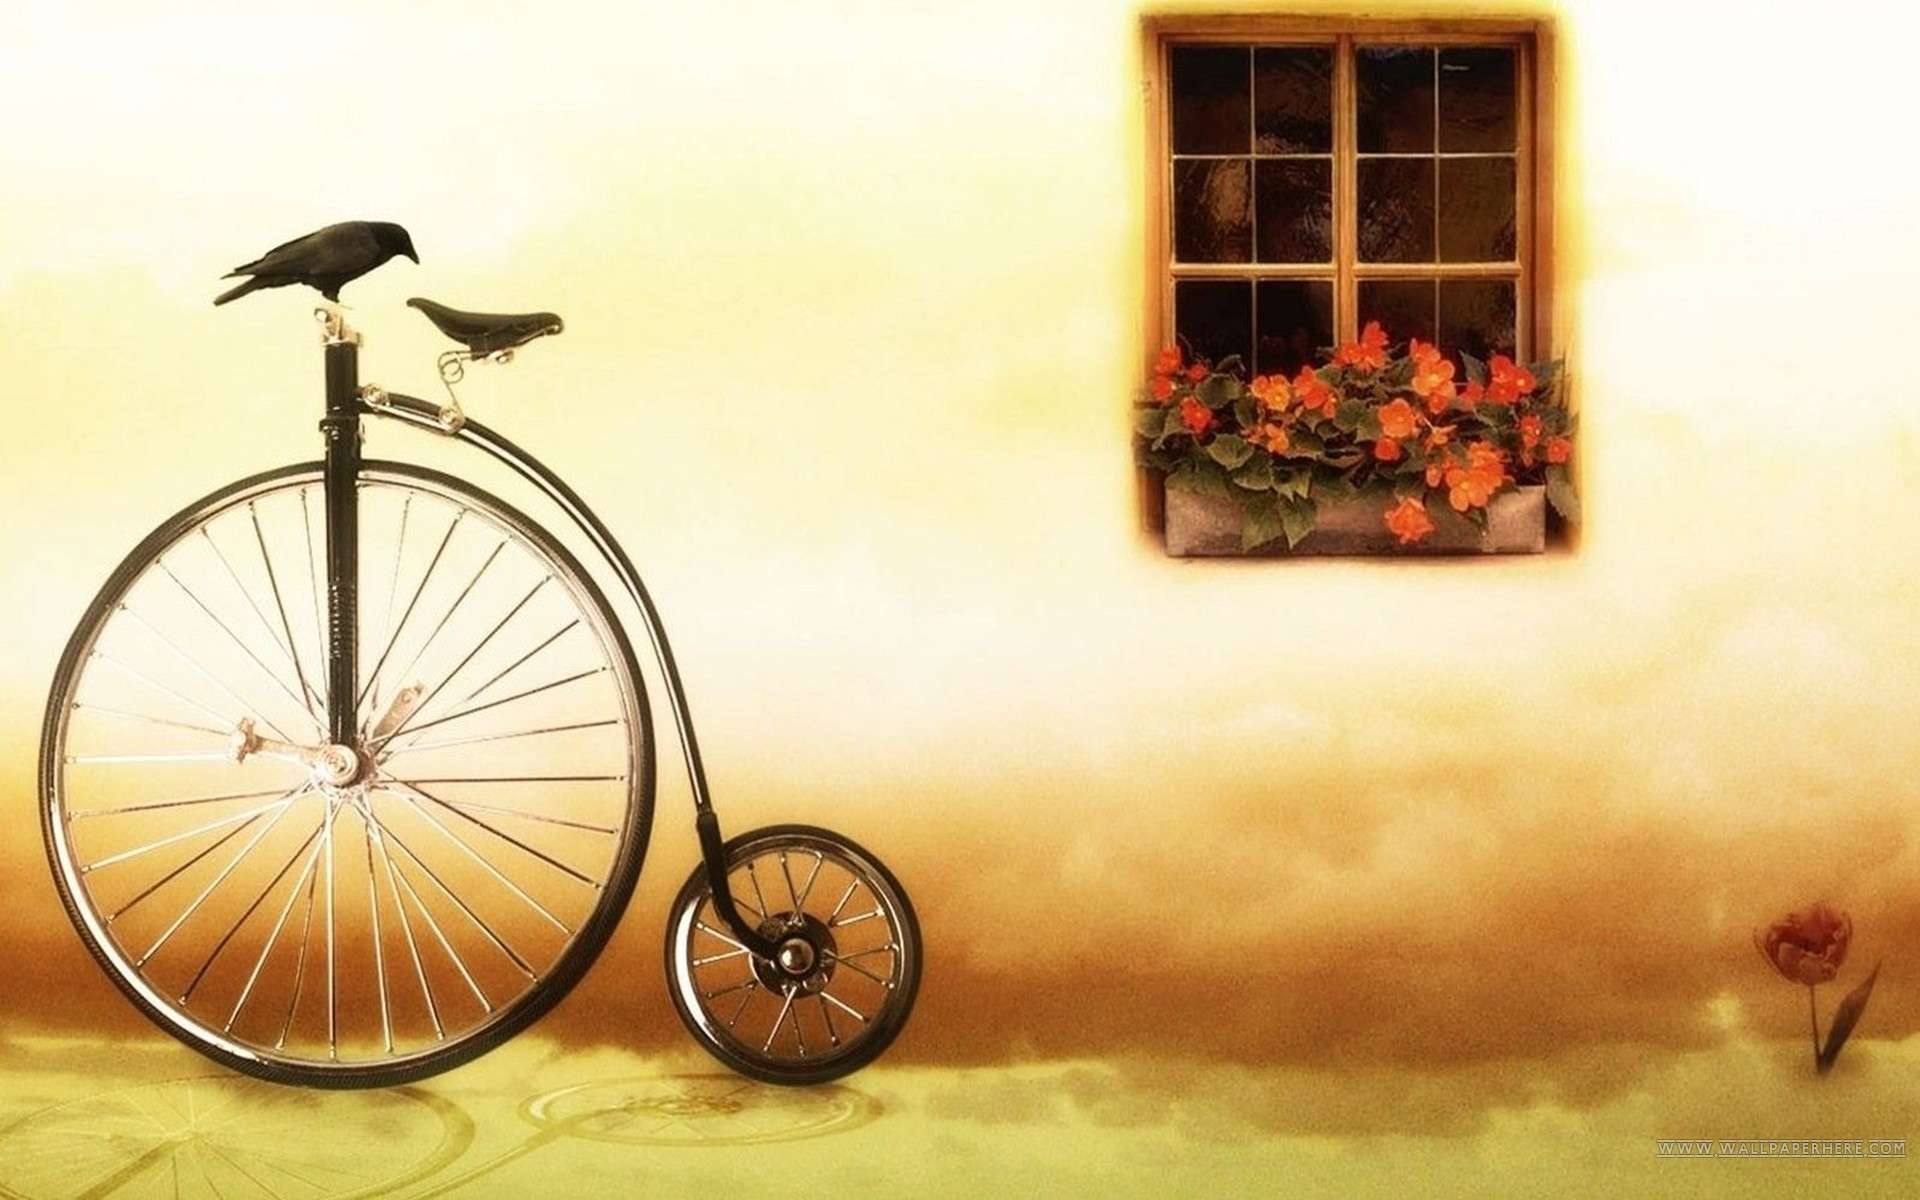 Special Bicycle Hd Desktop Wallpaper Wallpapers Hd Car Wallpapers 1920x1200